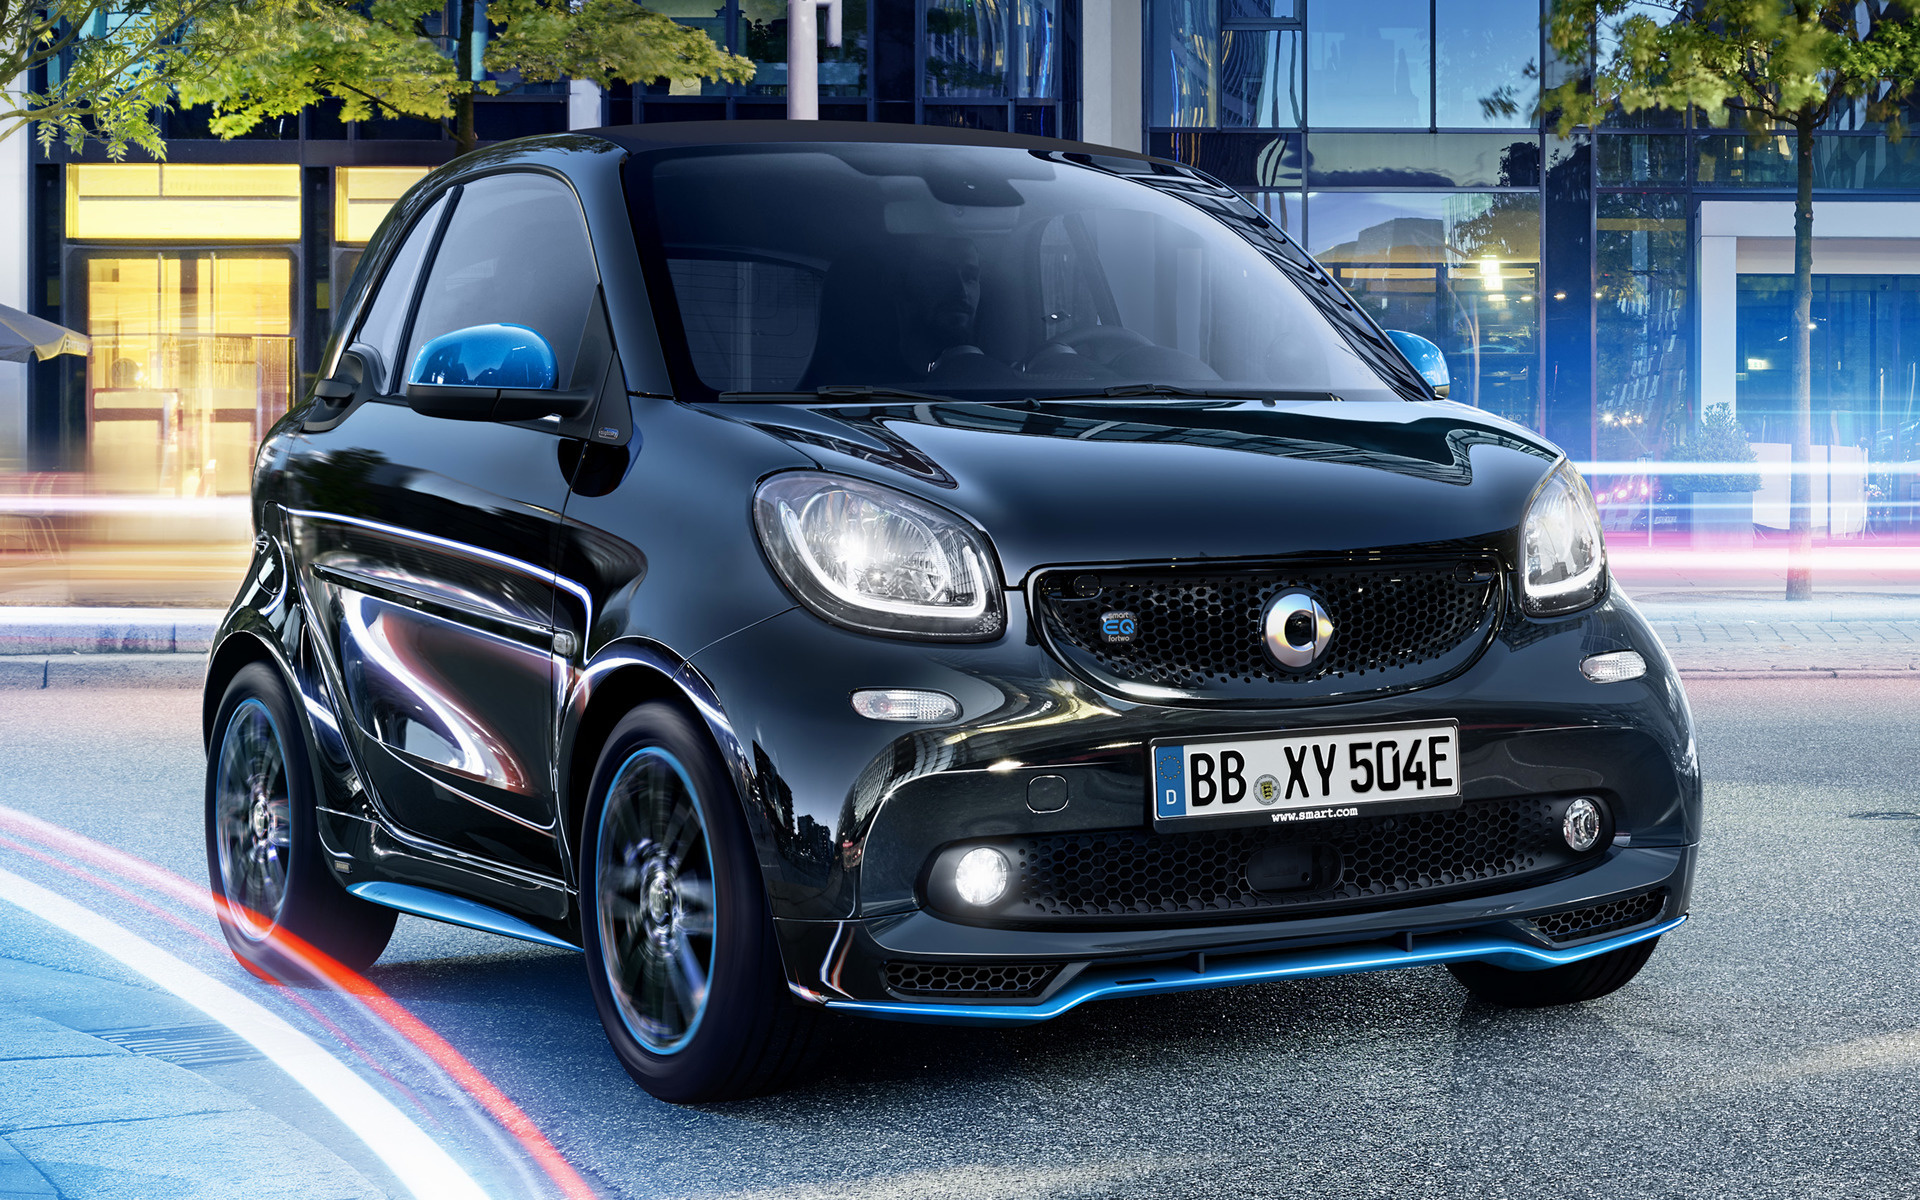 Hd Car Wallpapers Subaru Smart Eq Fortwo Nightsky Edition 2018 Wallpapers And Hd